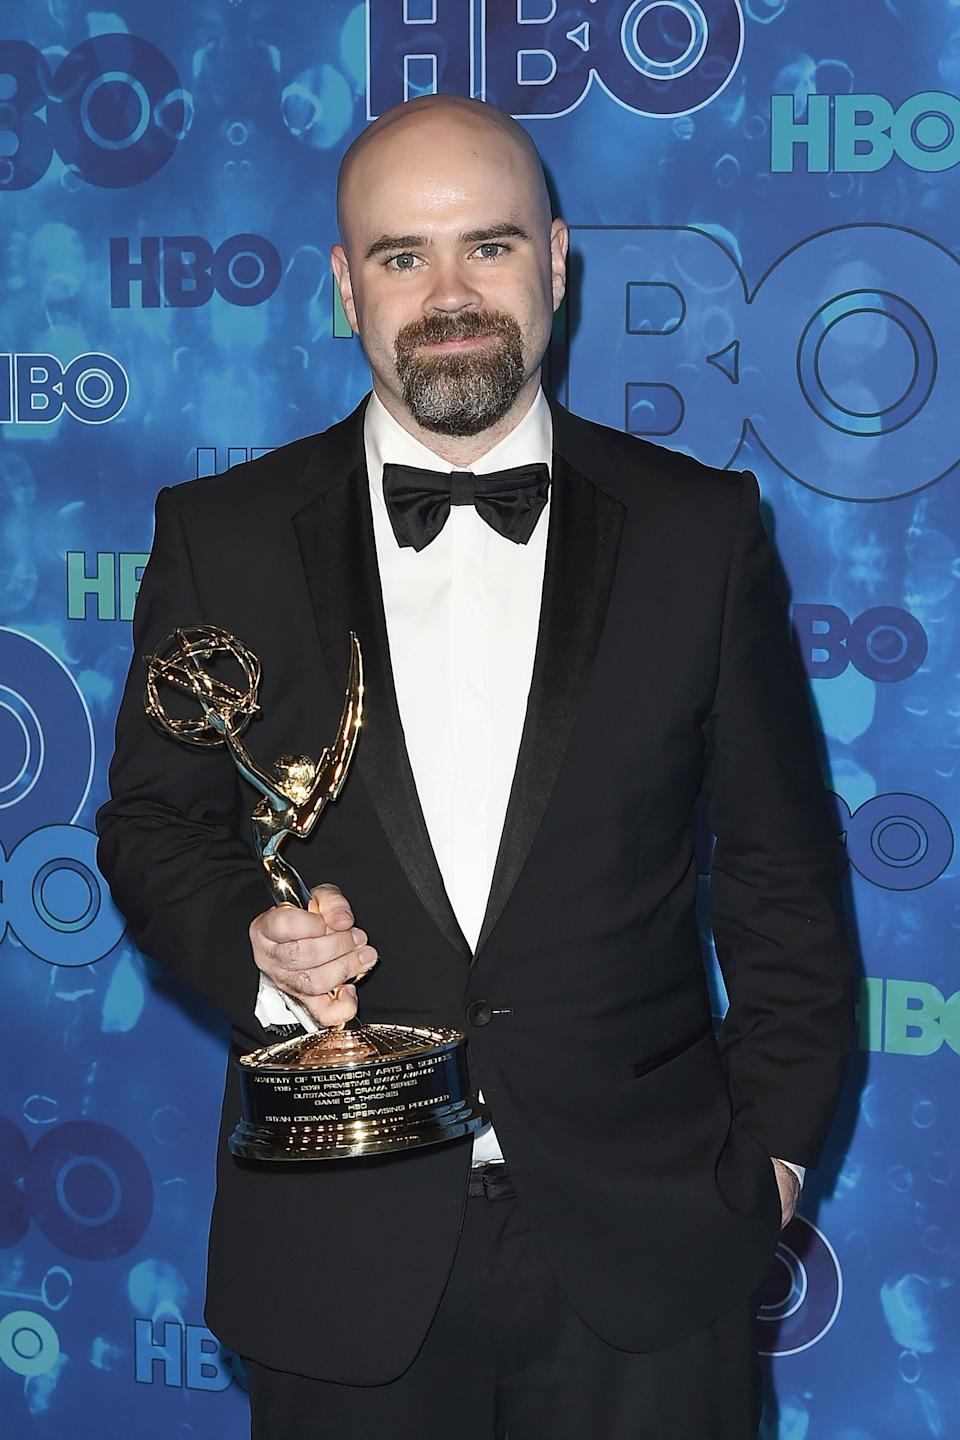 LOS ANGELES, CA - SEPTEMBER 18:  Bryan Cogman attends HBO's Post Award Reception Following the 68th Primetime Emmy Awards at The Plaza at the Pacific Design Center on September 18, 2016 in Los Angeles, California.  (Photo by David Crotty/Patrick McMullan via Getty Images)